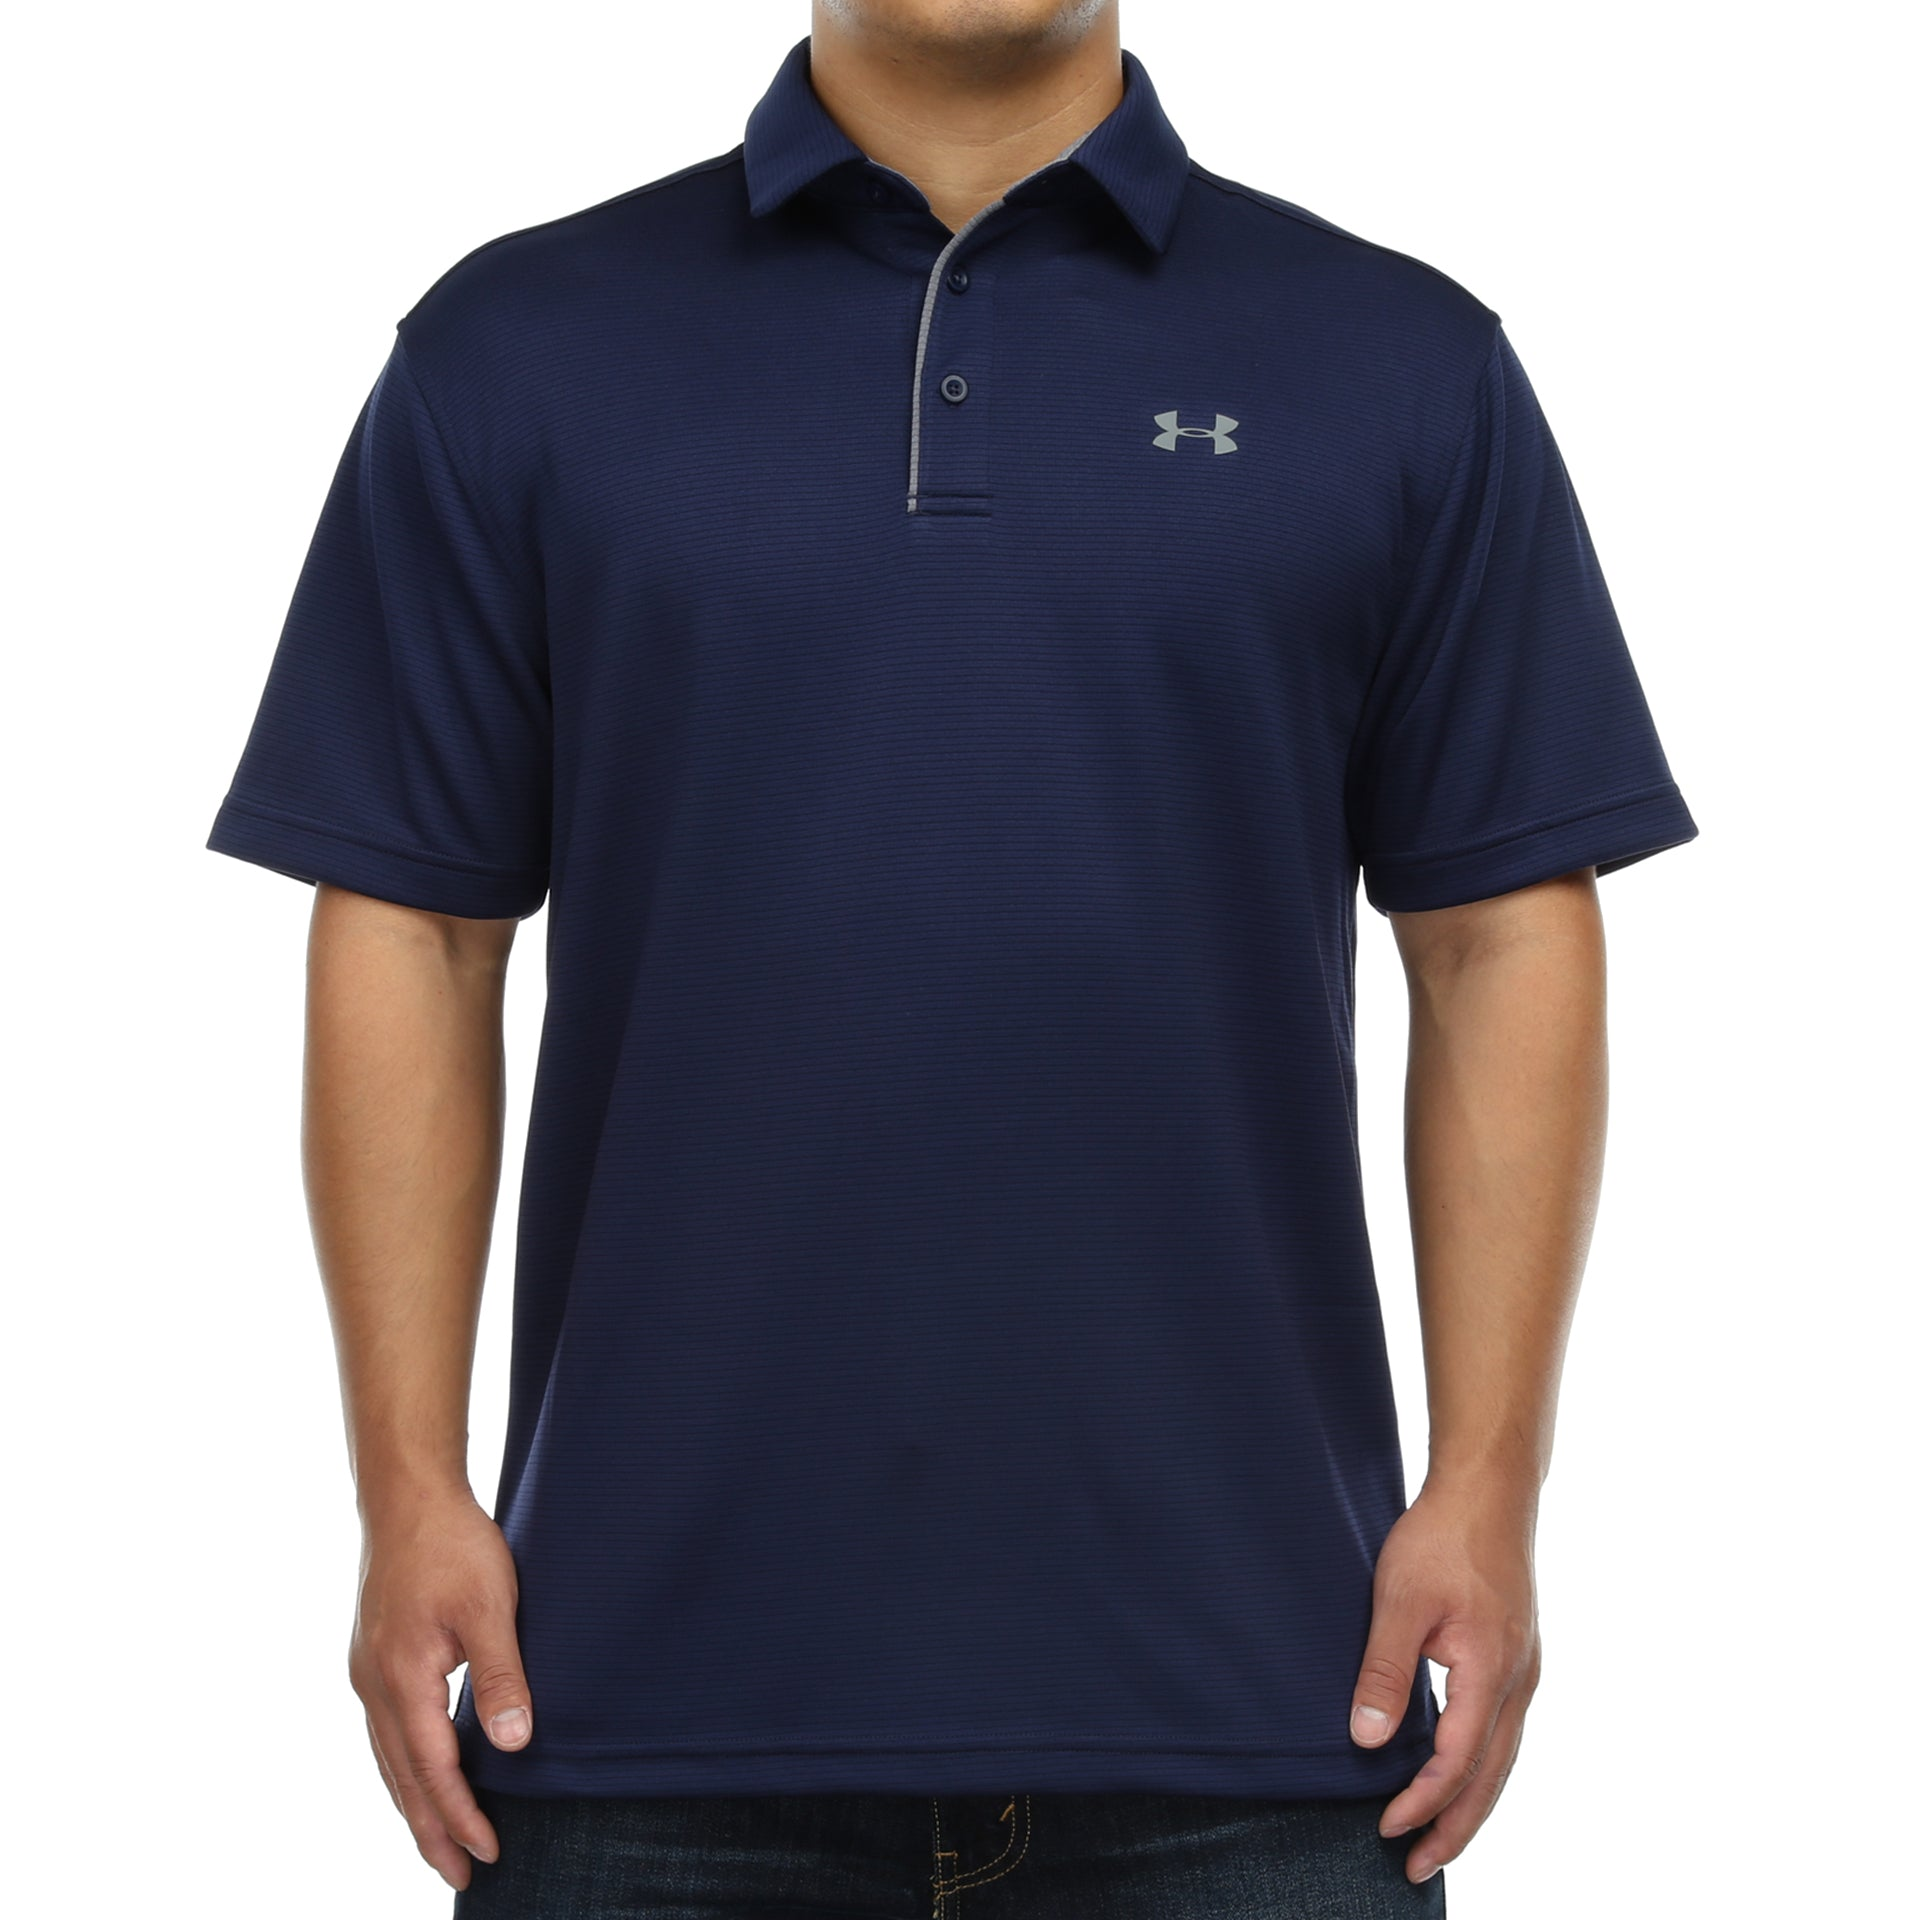 8bf3926c Under Armour Tech Polo - Midnight Navy - New Star